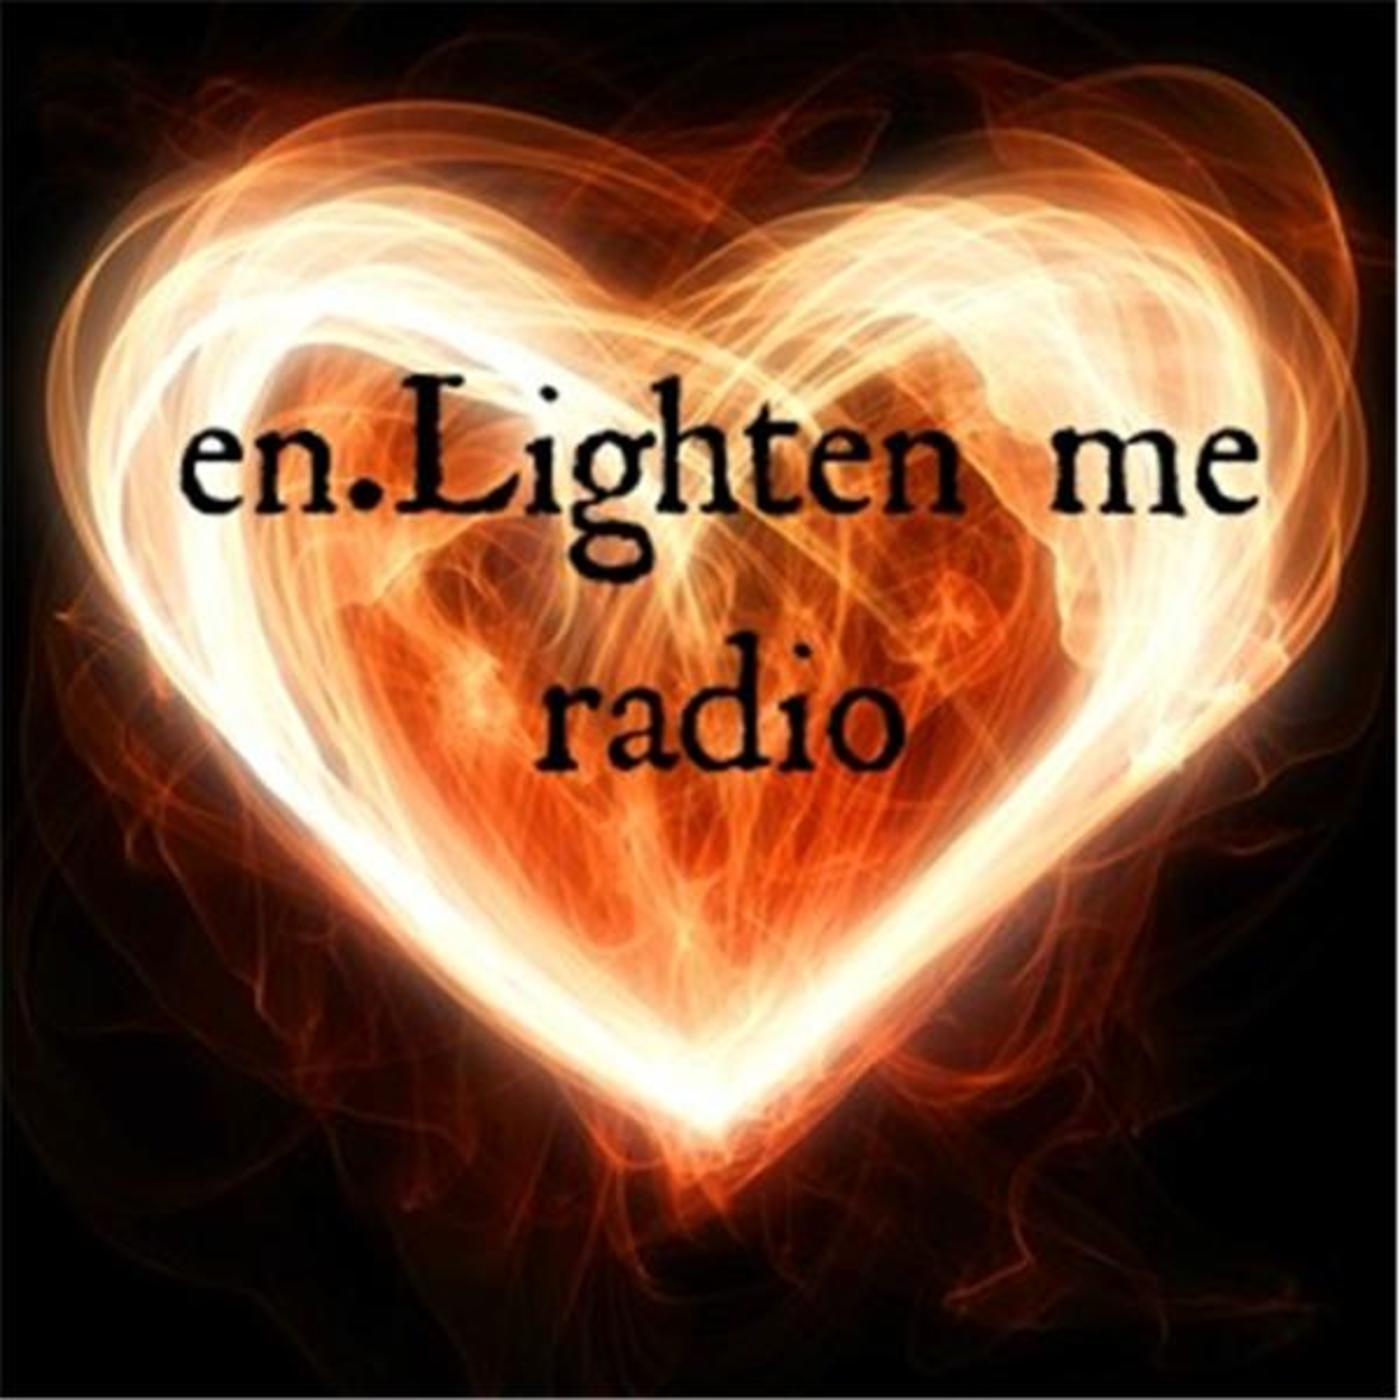 en.Lighten me Radio